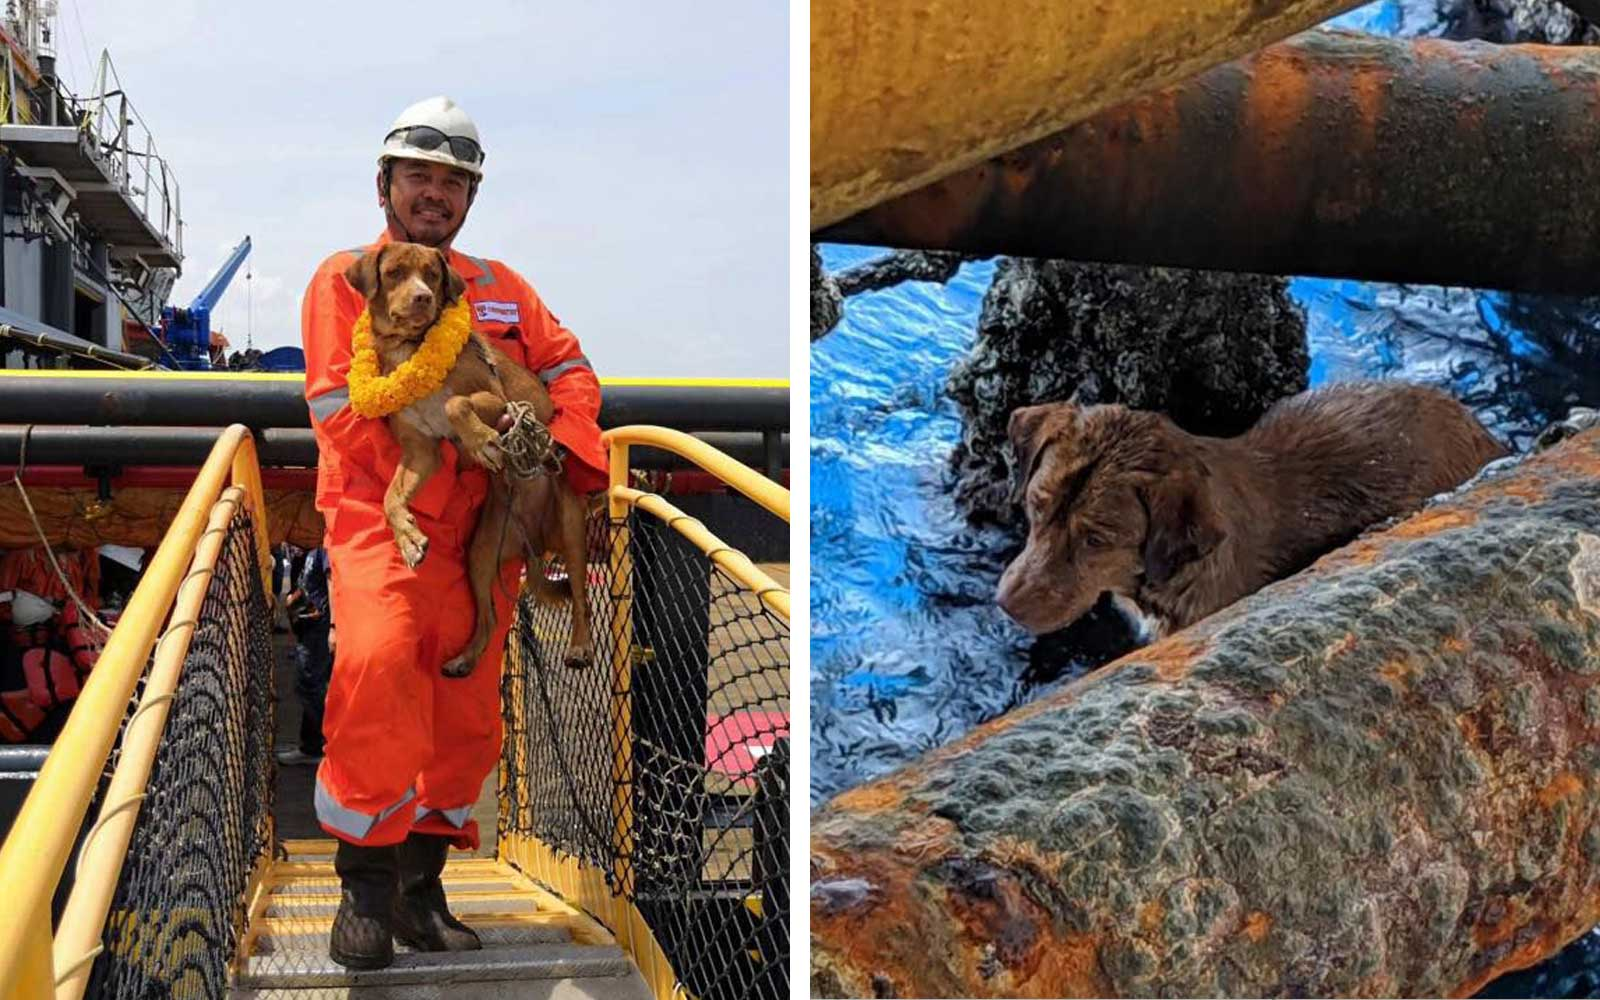 Oil Rig Workers Rescue Stray Dog Found Swimming 135 Miles Off Coast of Thailand